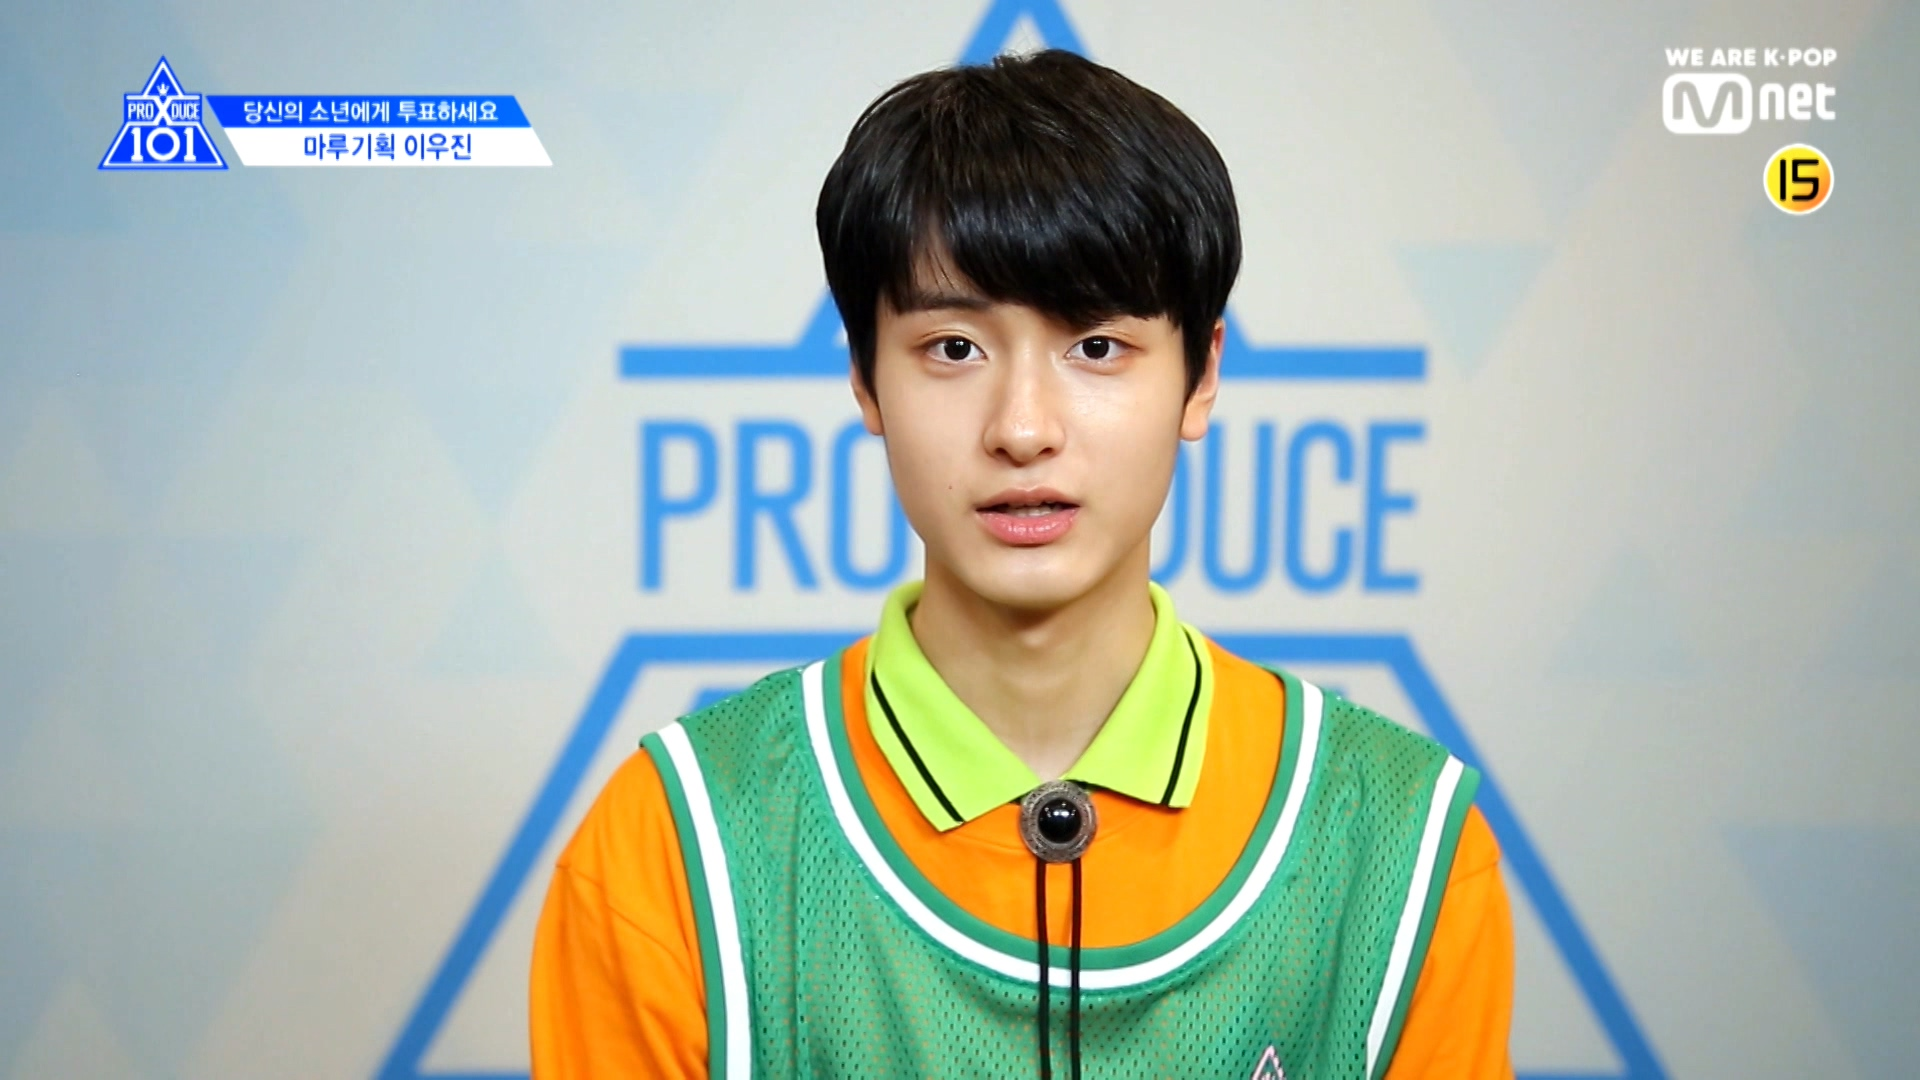 [PRODUCE X 101] EYE CONTACT CHALLENGE l LEE WOO JIN(maroo)